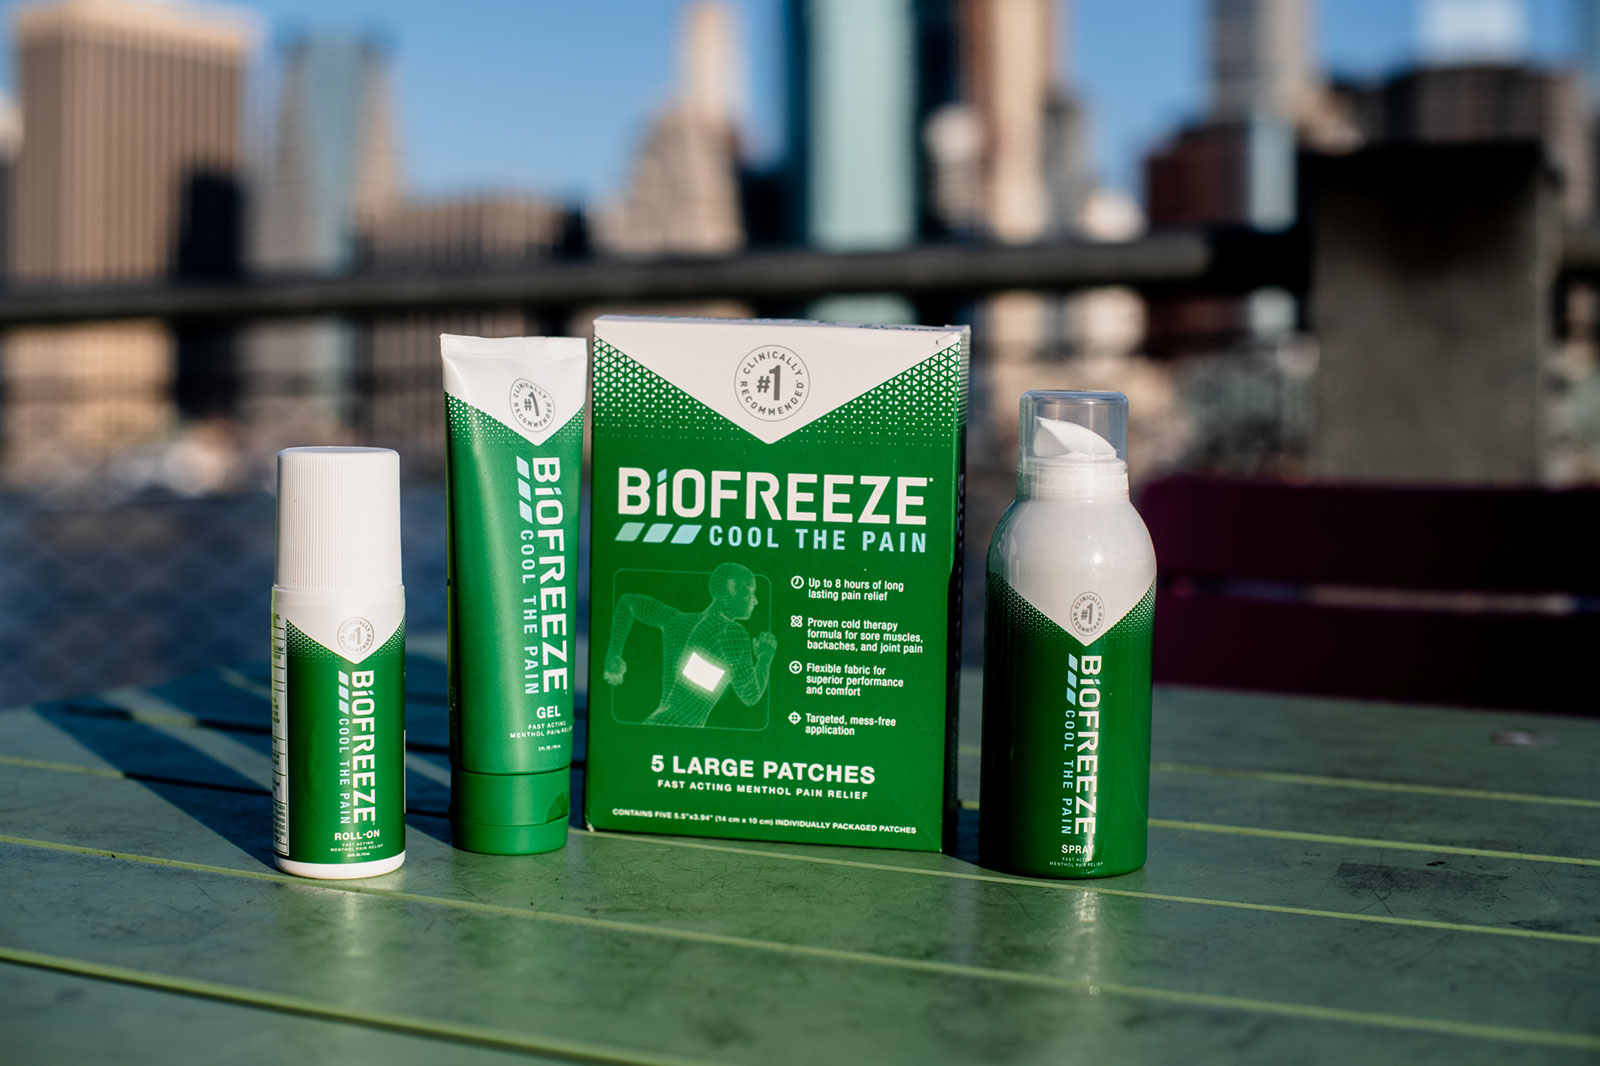 Biofreeze Products